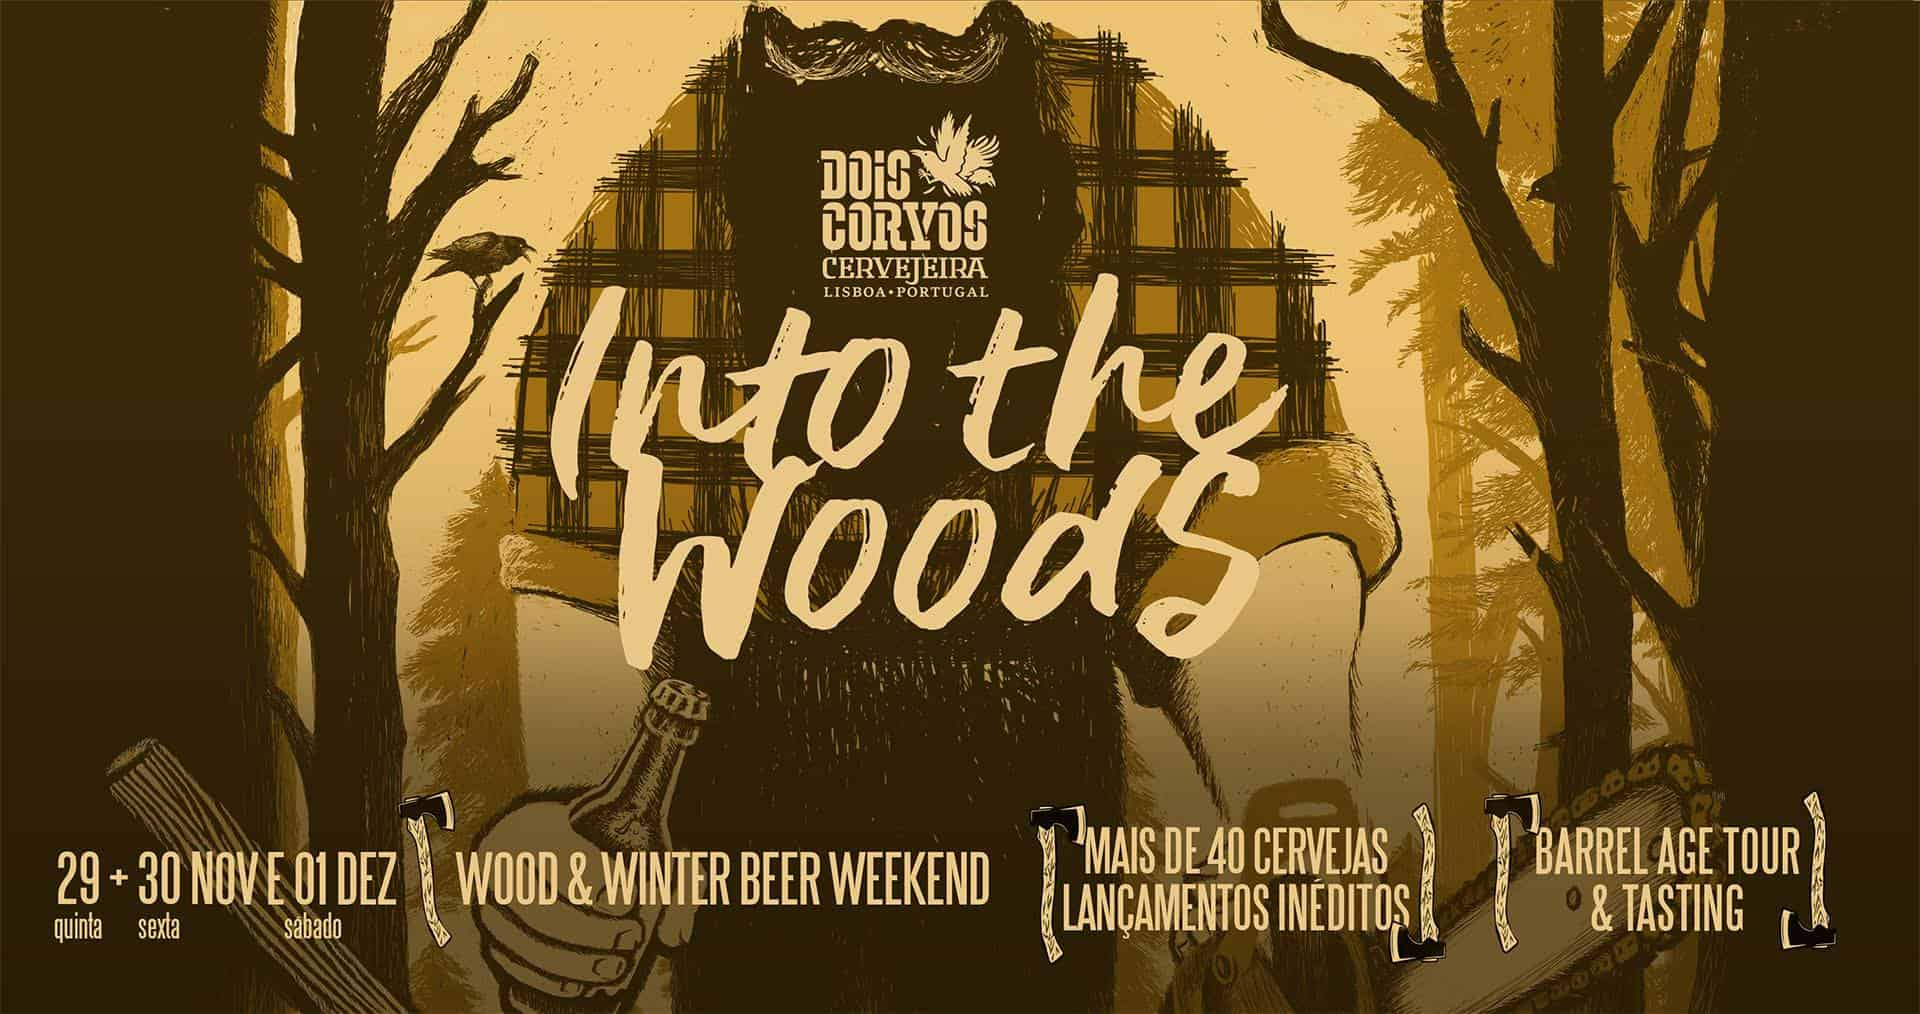 INTO THE WOODS – WOOD & WINTER BEER WEEKEND BY DOIS CORVOS